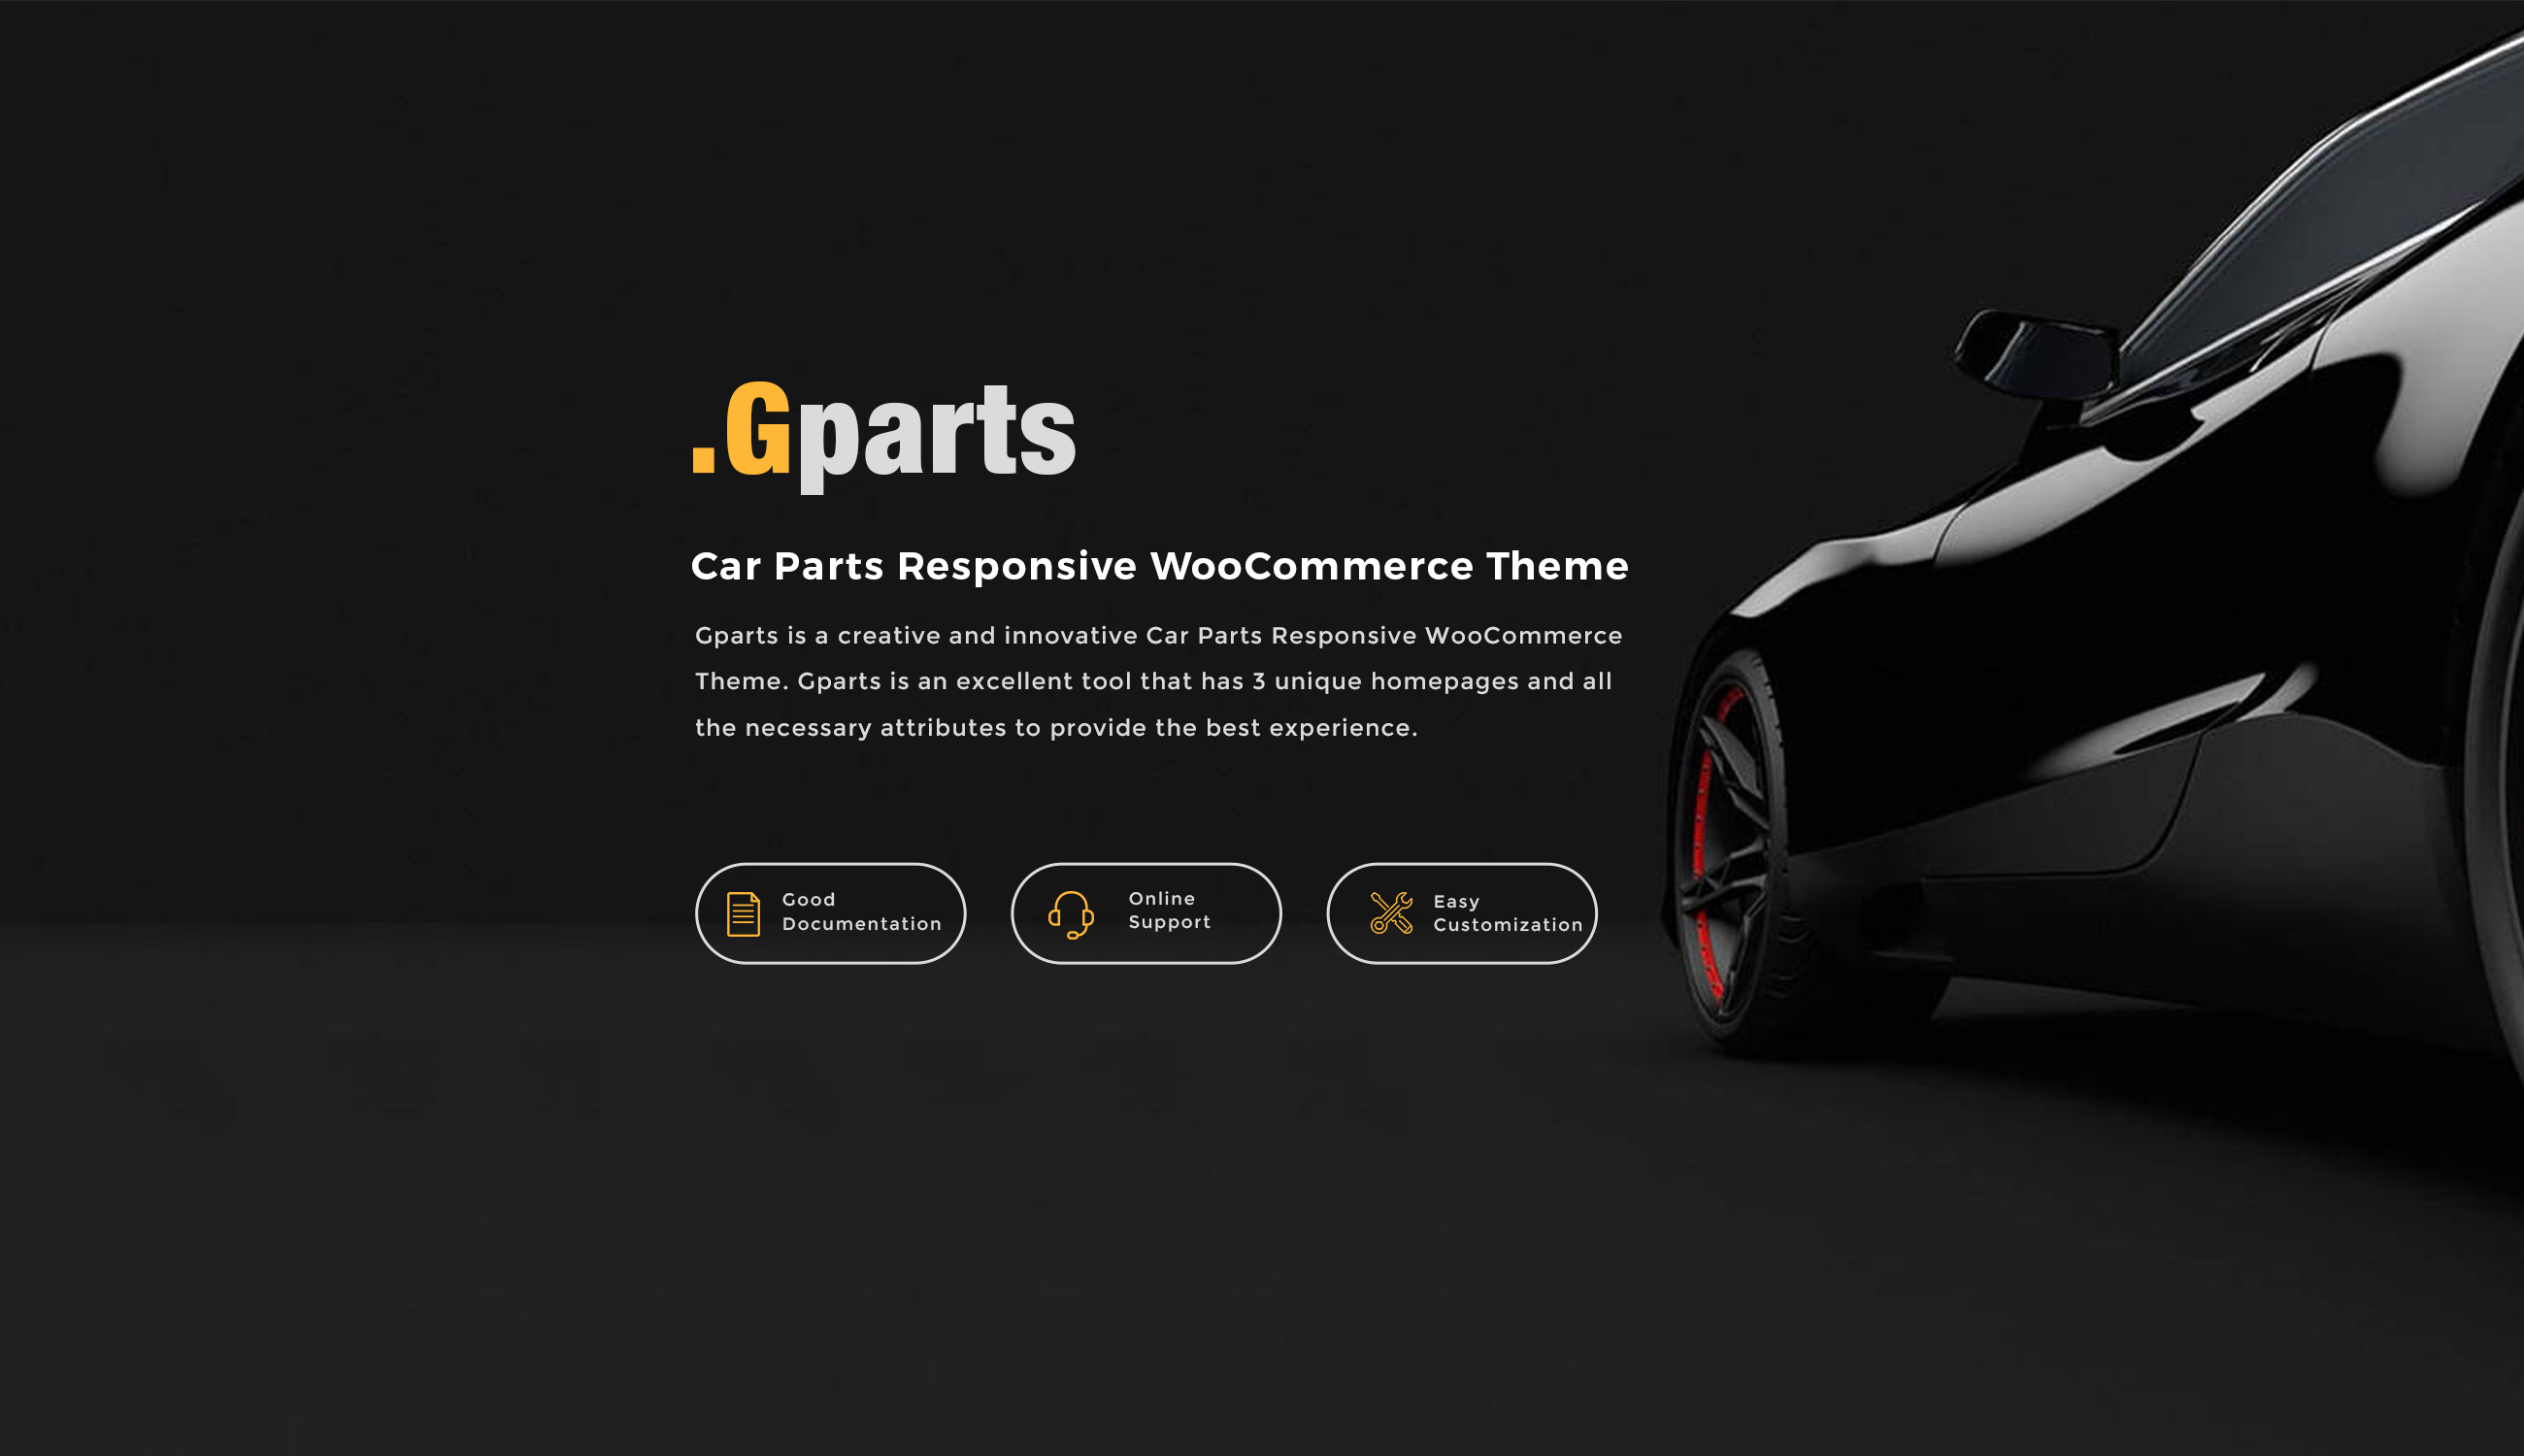 Gparts - Car Parts Responsive WooCommerce Theme